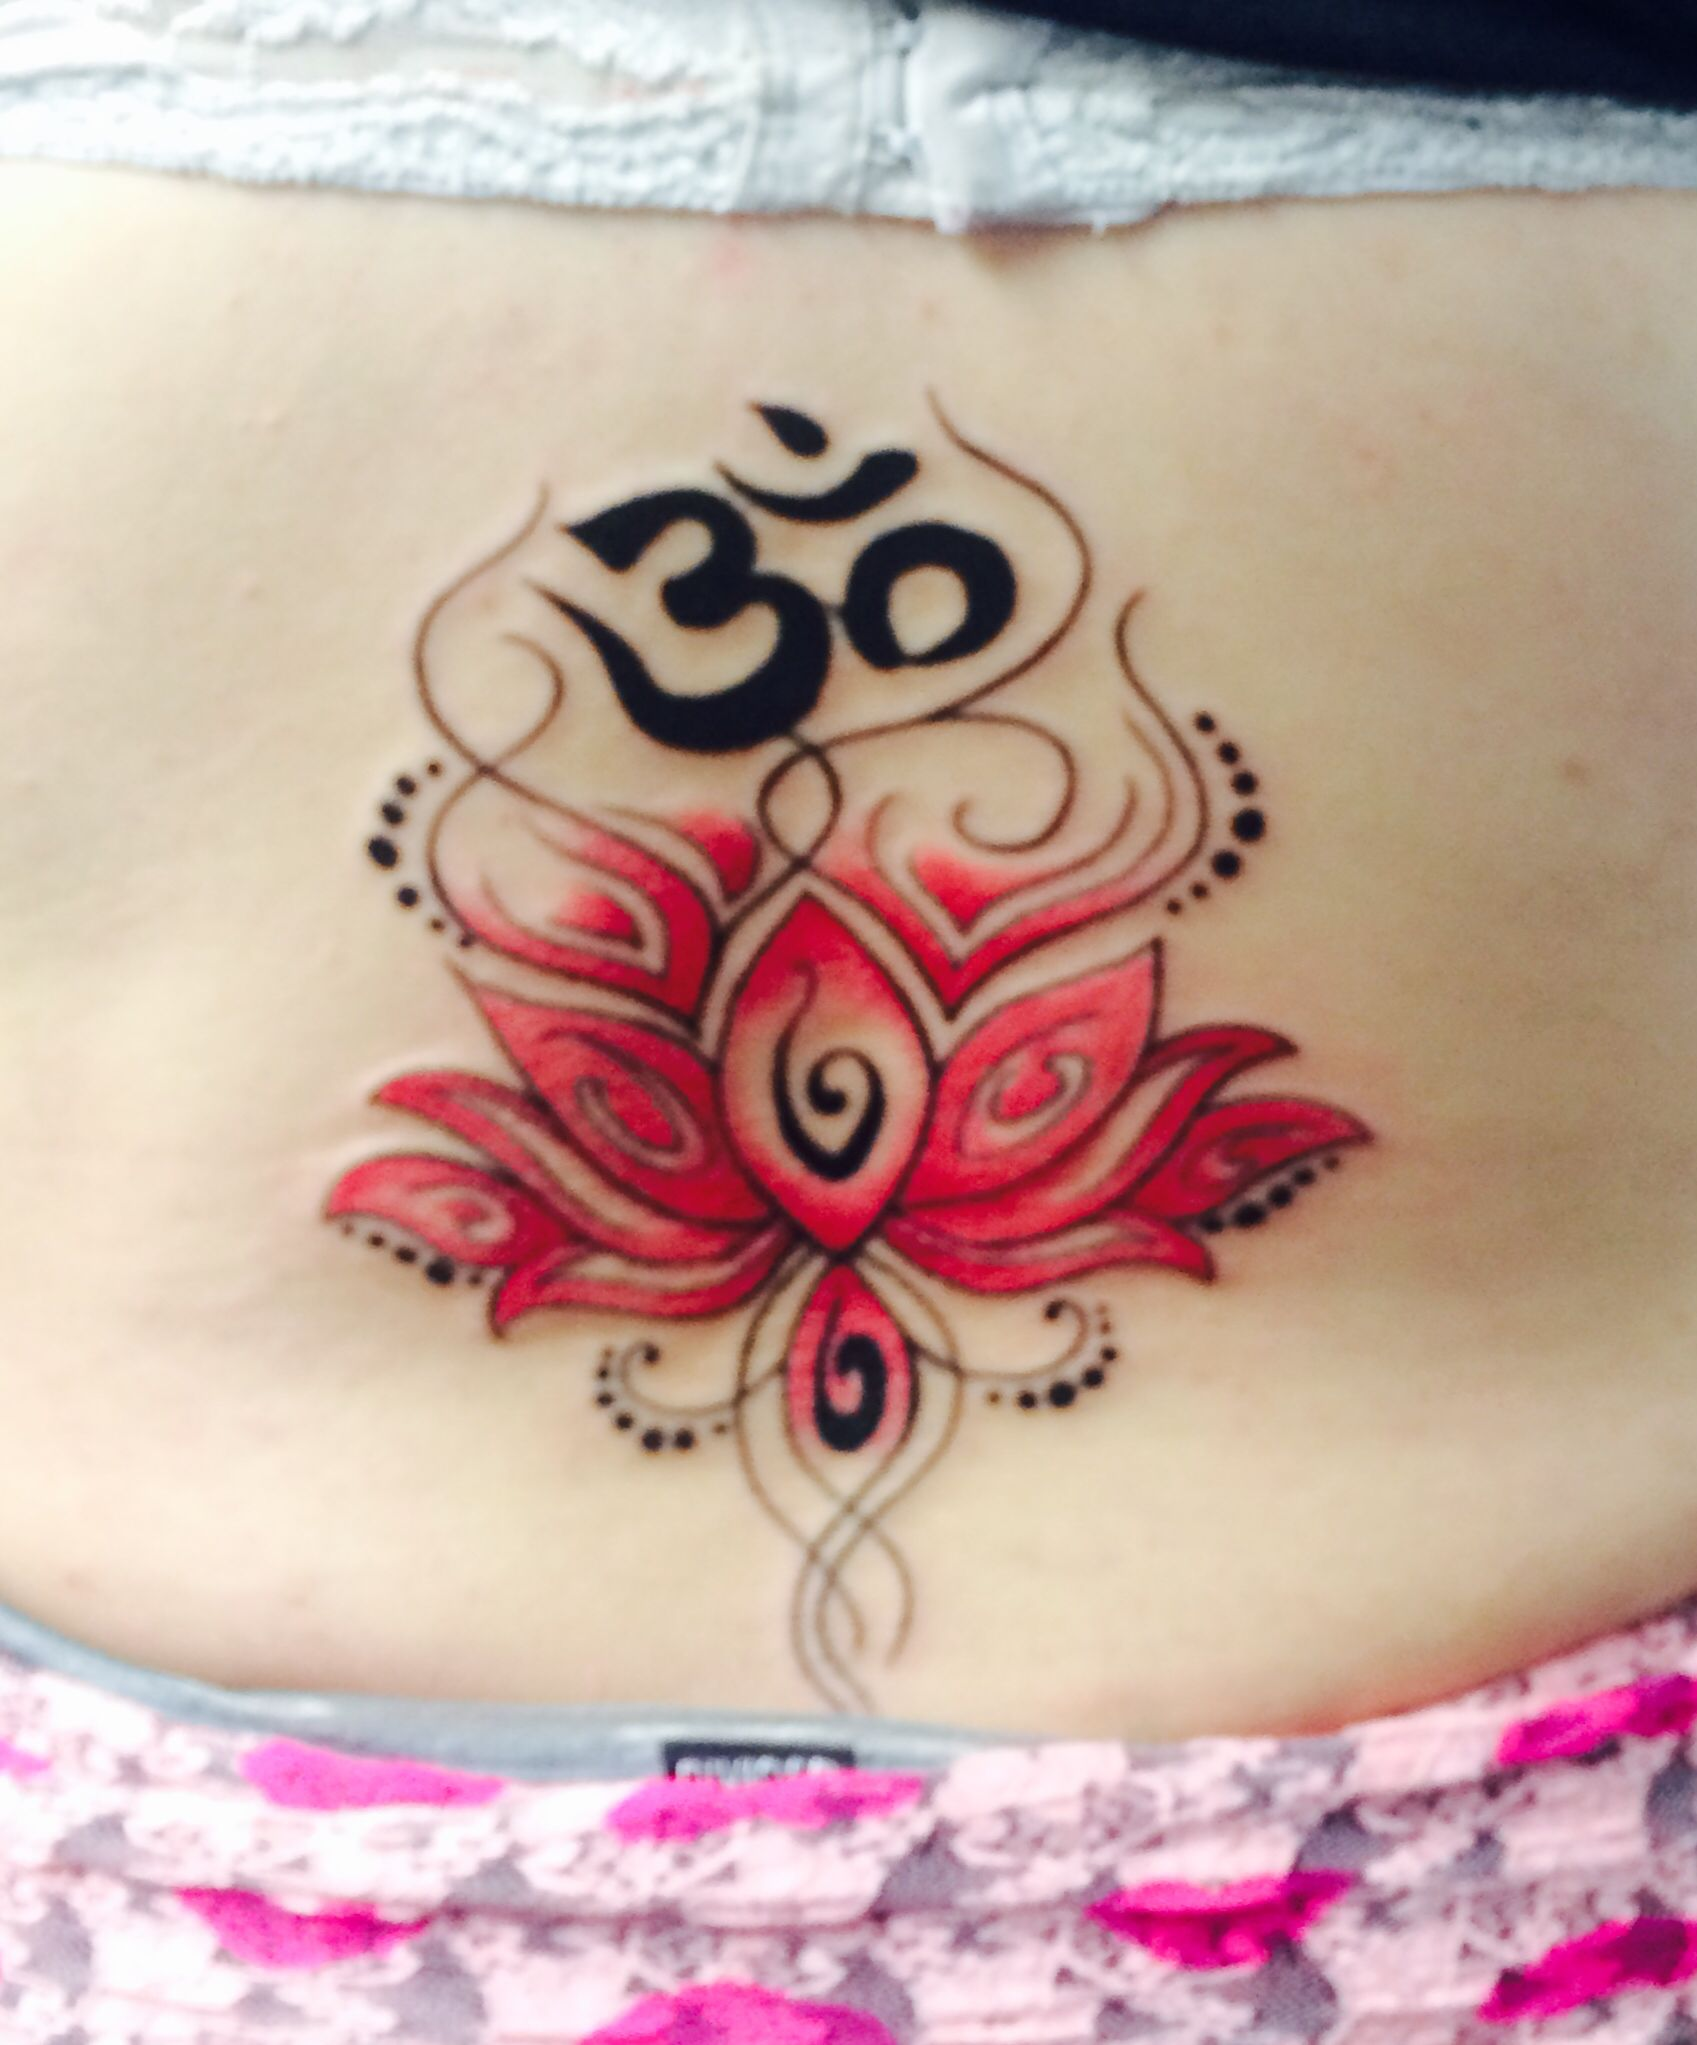 Pink lotus flower lower back tattoo! Ohm at the top